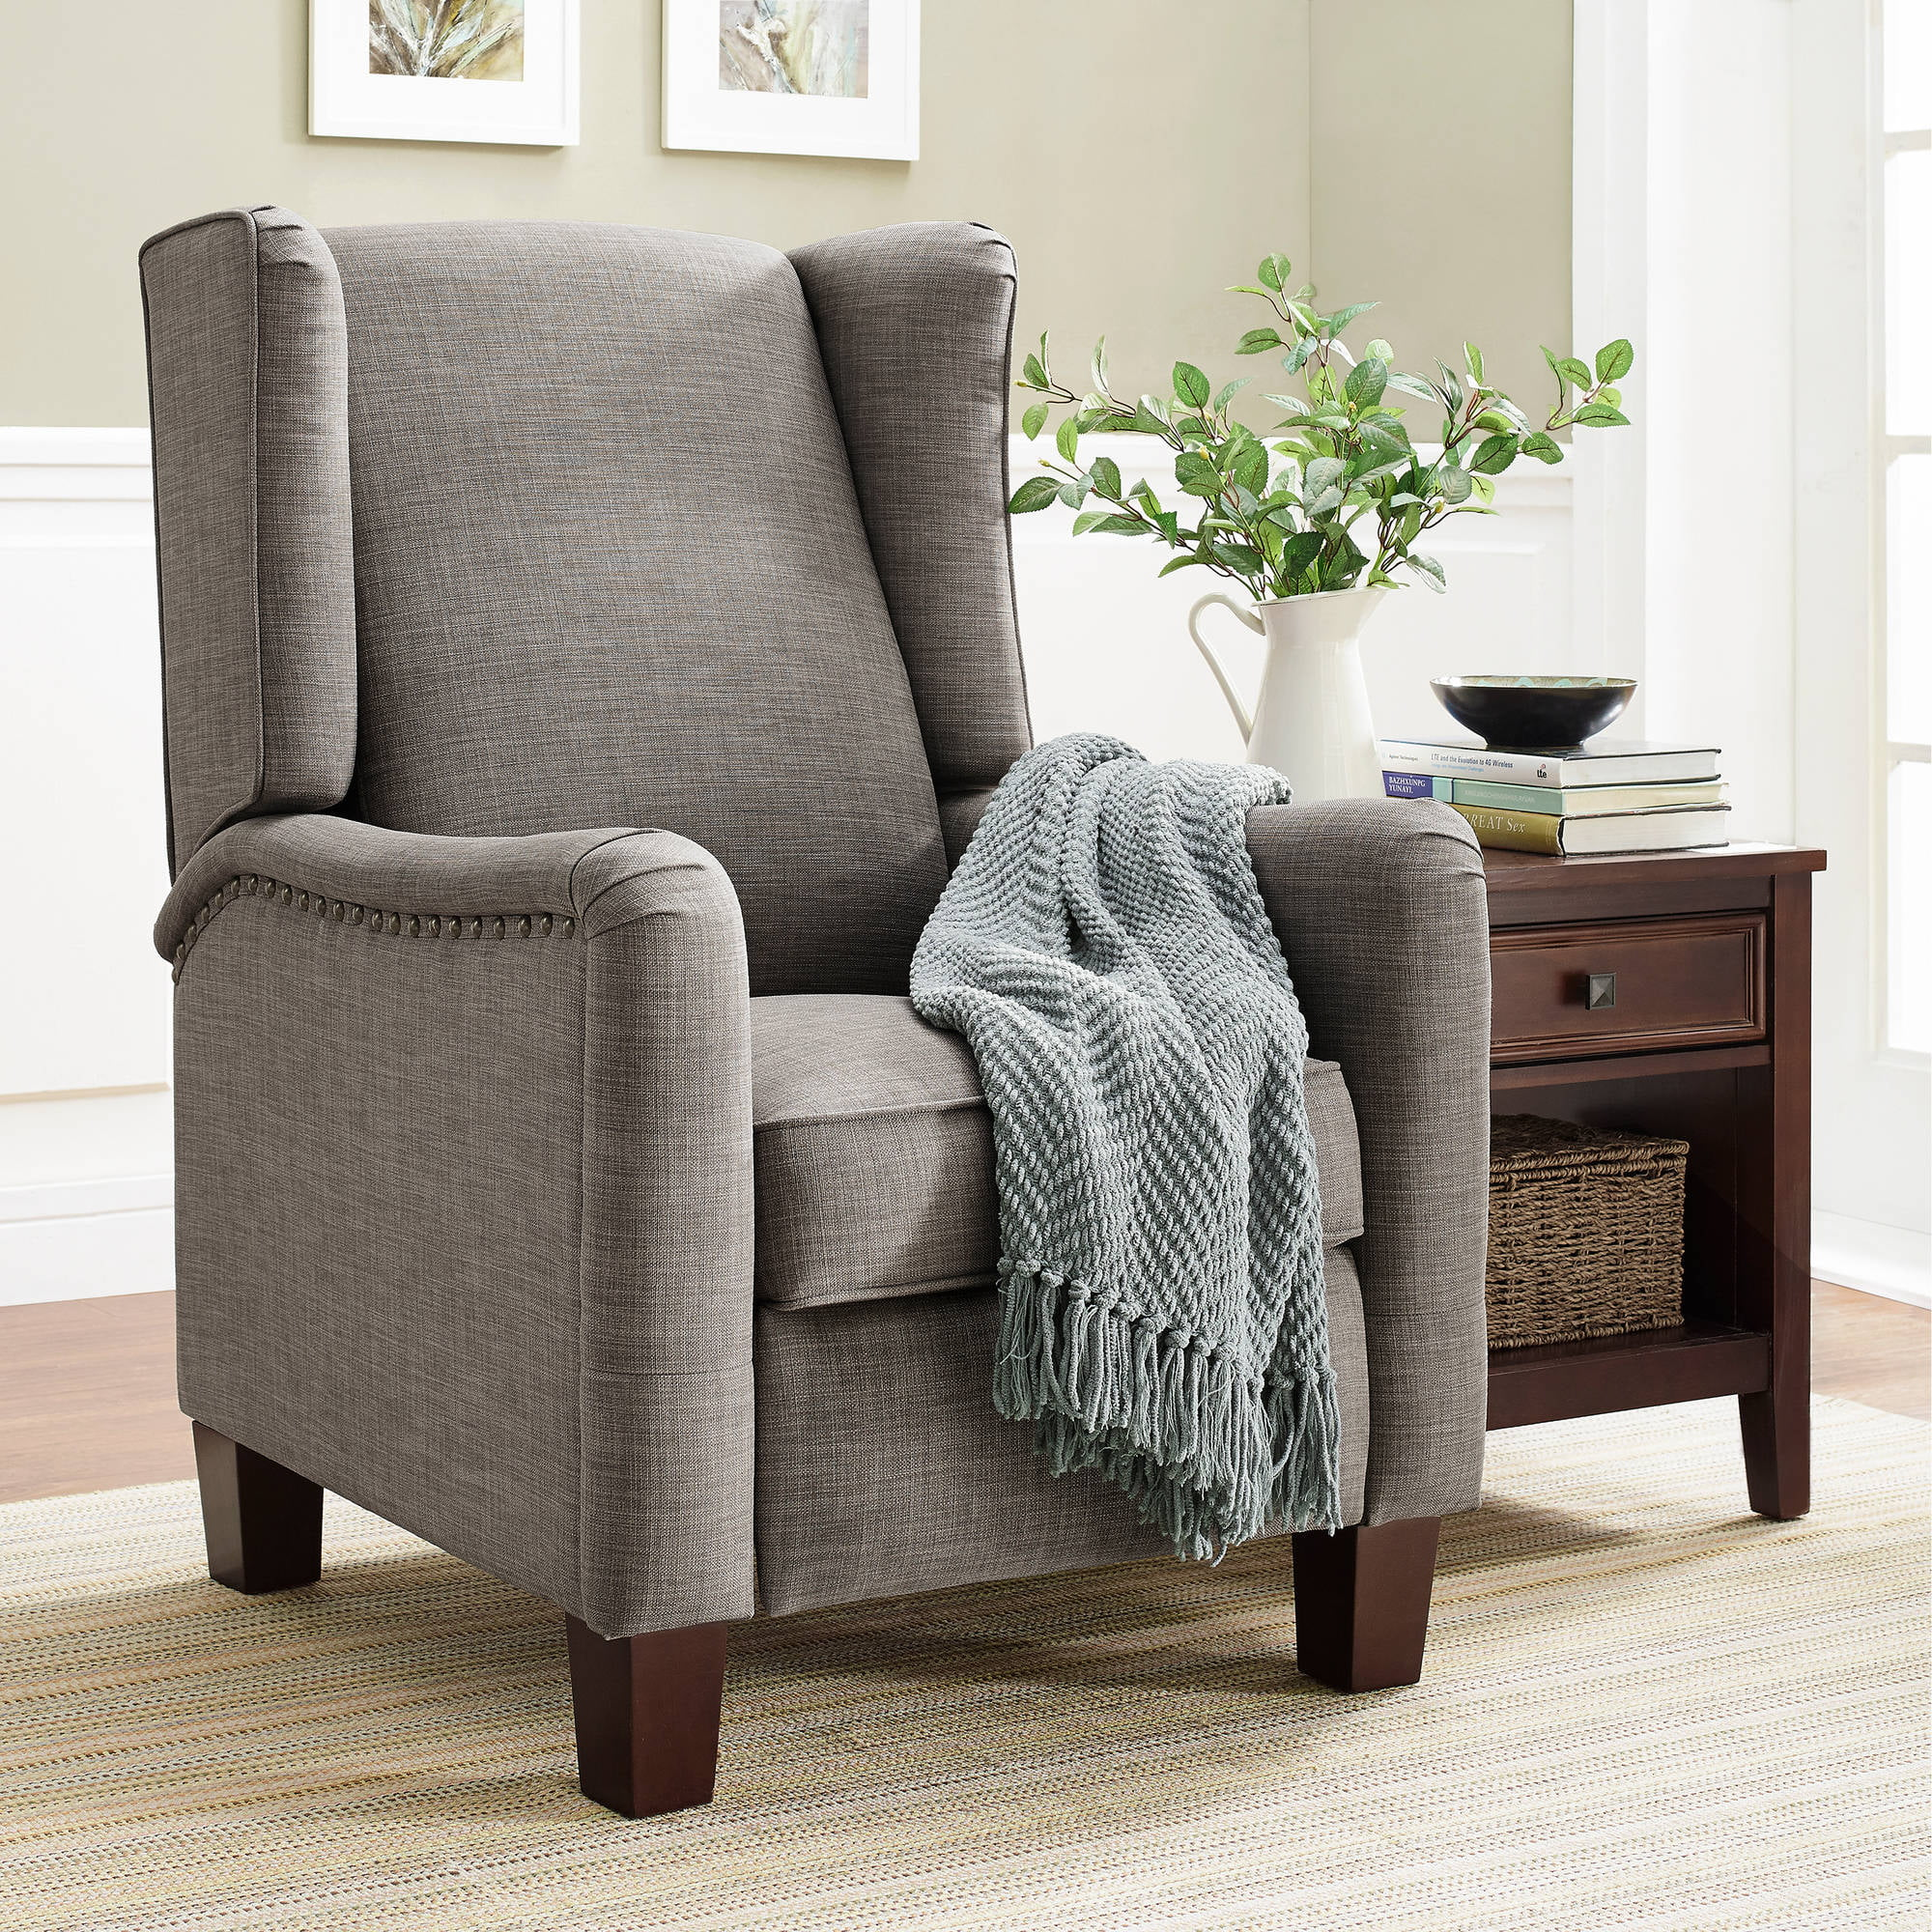 Better Homes and Gardens Grayson Wingback Pushback Recliner by Dorel Asia